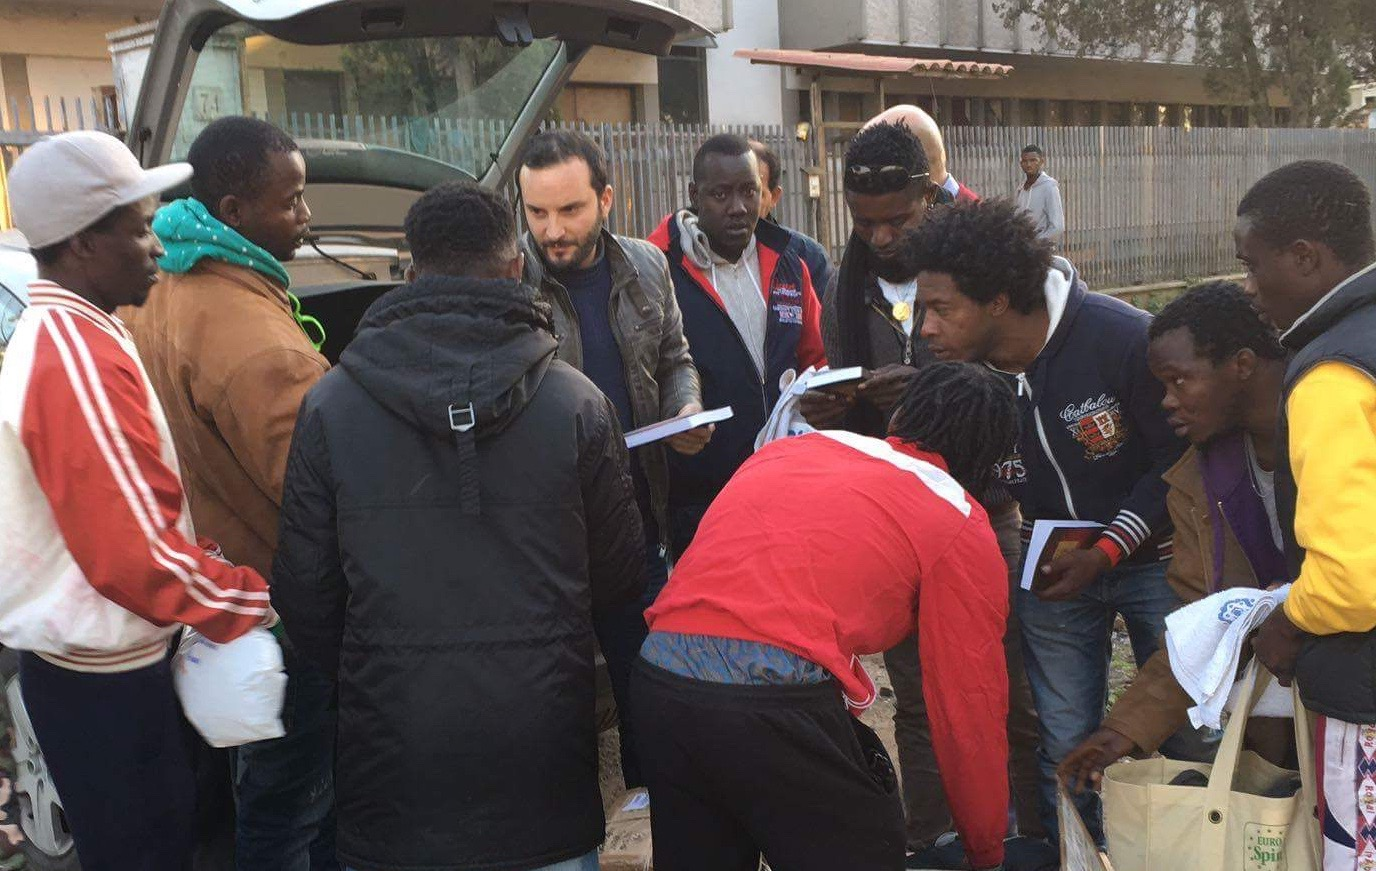 MINISTRY AMONG REFUGEES, by DANIELE LOREFICE (YOUTH ADVISORY COMMITTEE MEMBER)